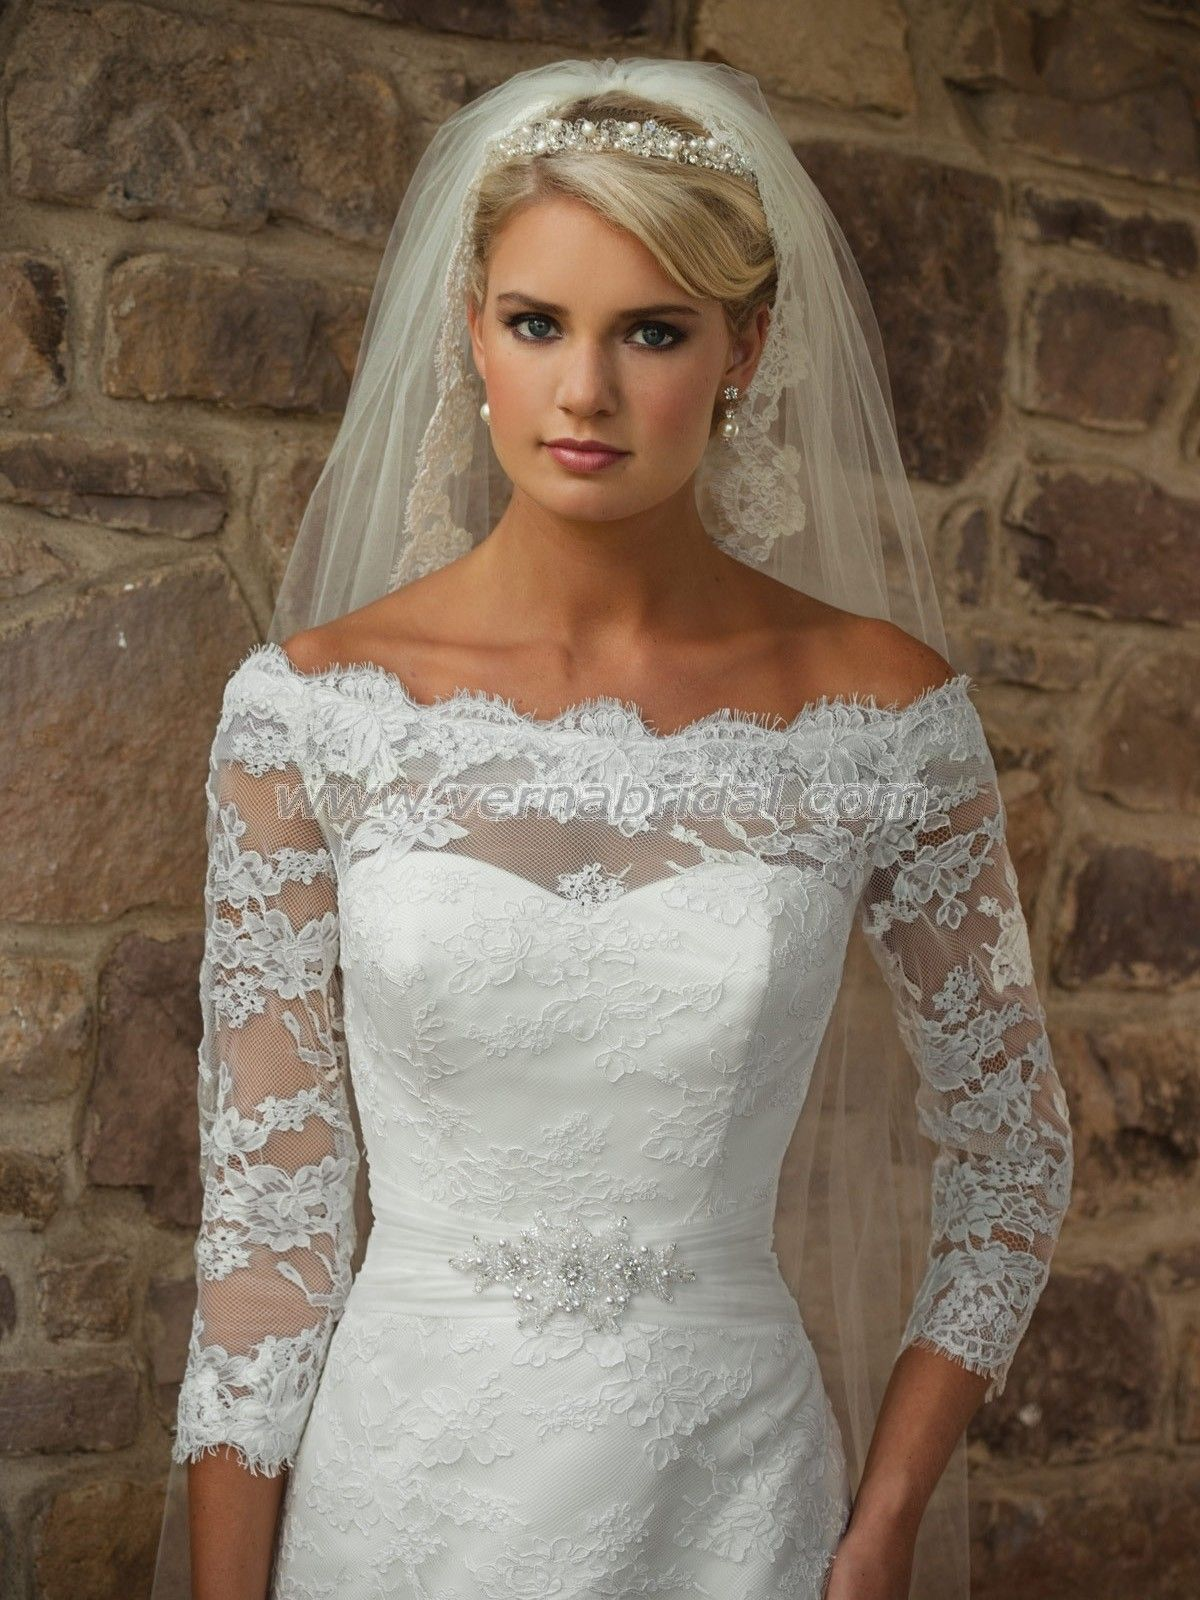 Pictures of wedding gowns with sleeves wedding dress with lace